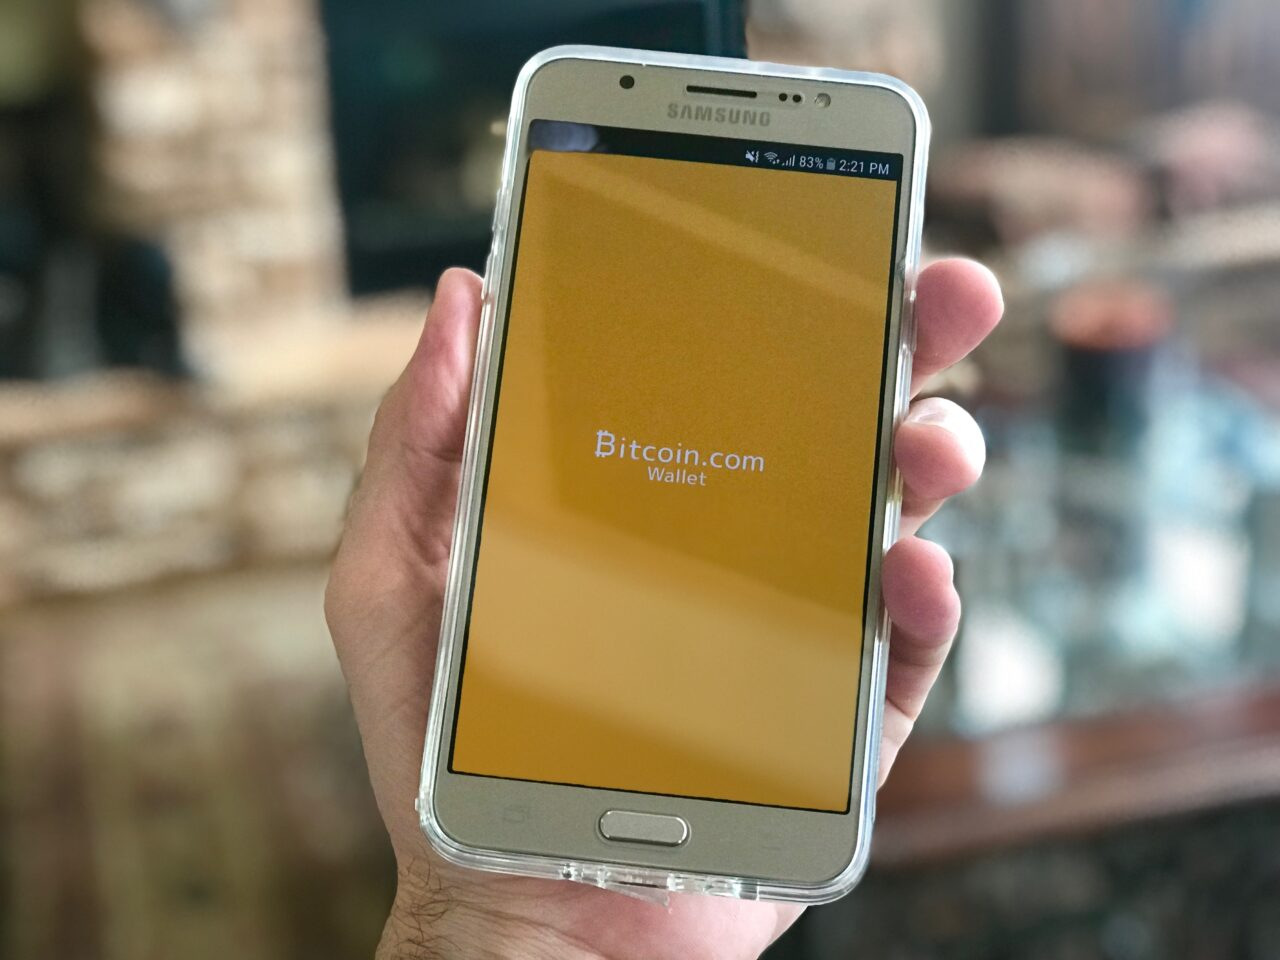 A person holding a phone with bitcoin wallet on the screen